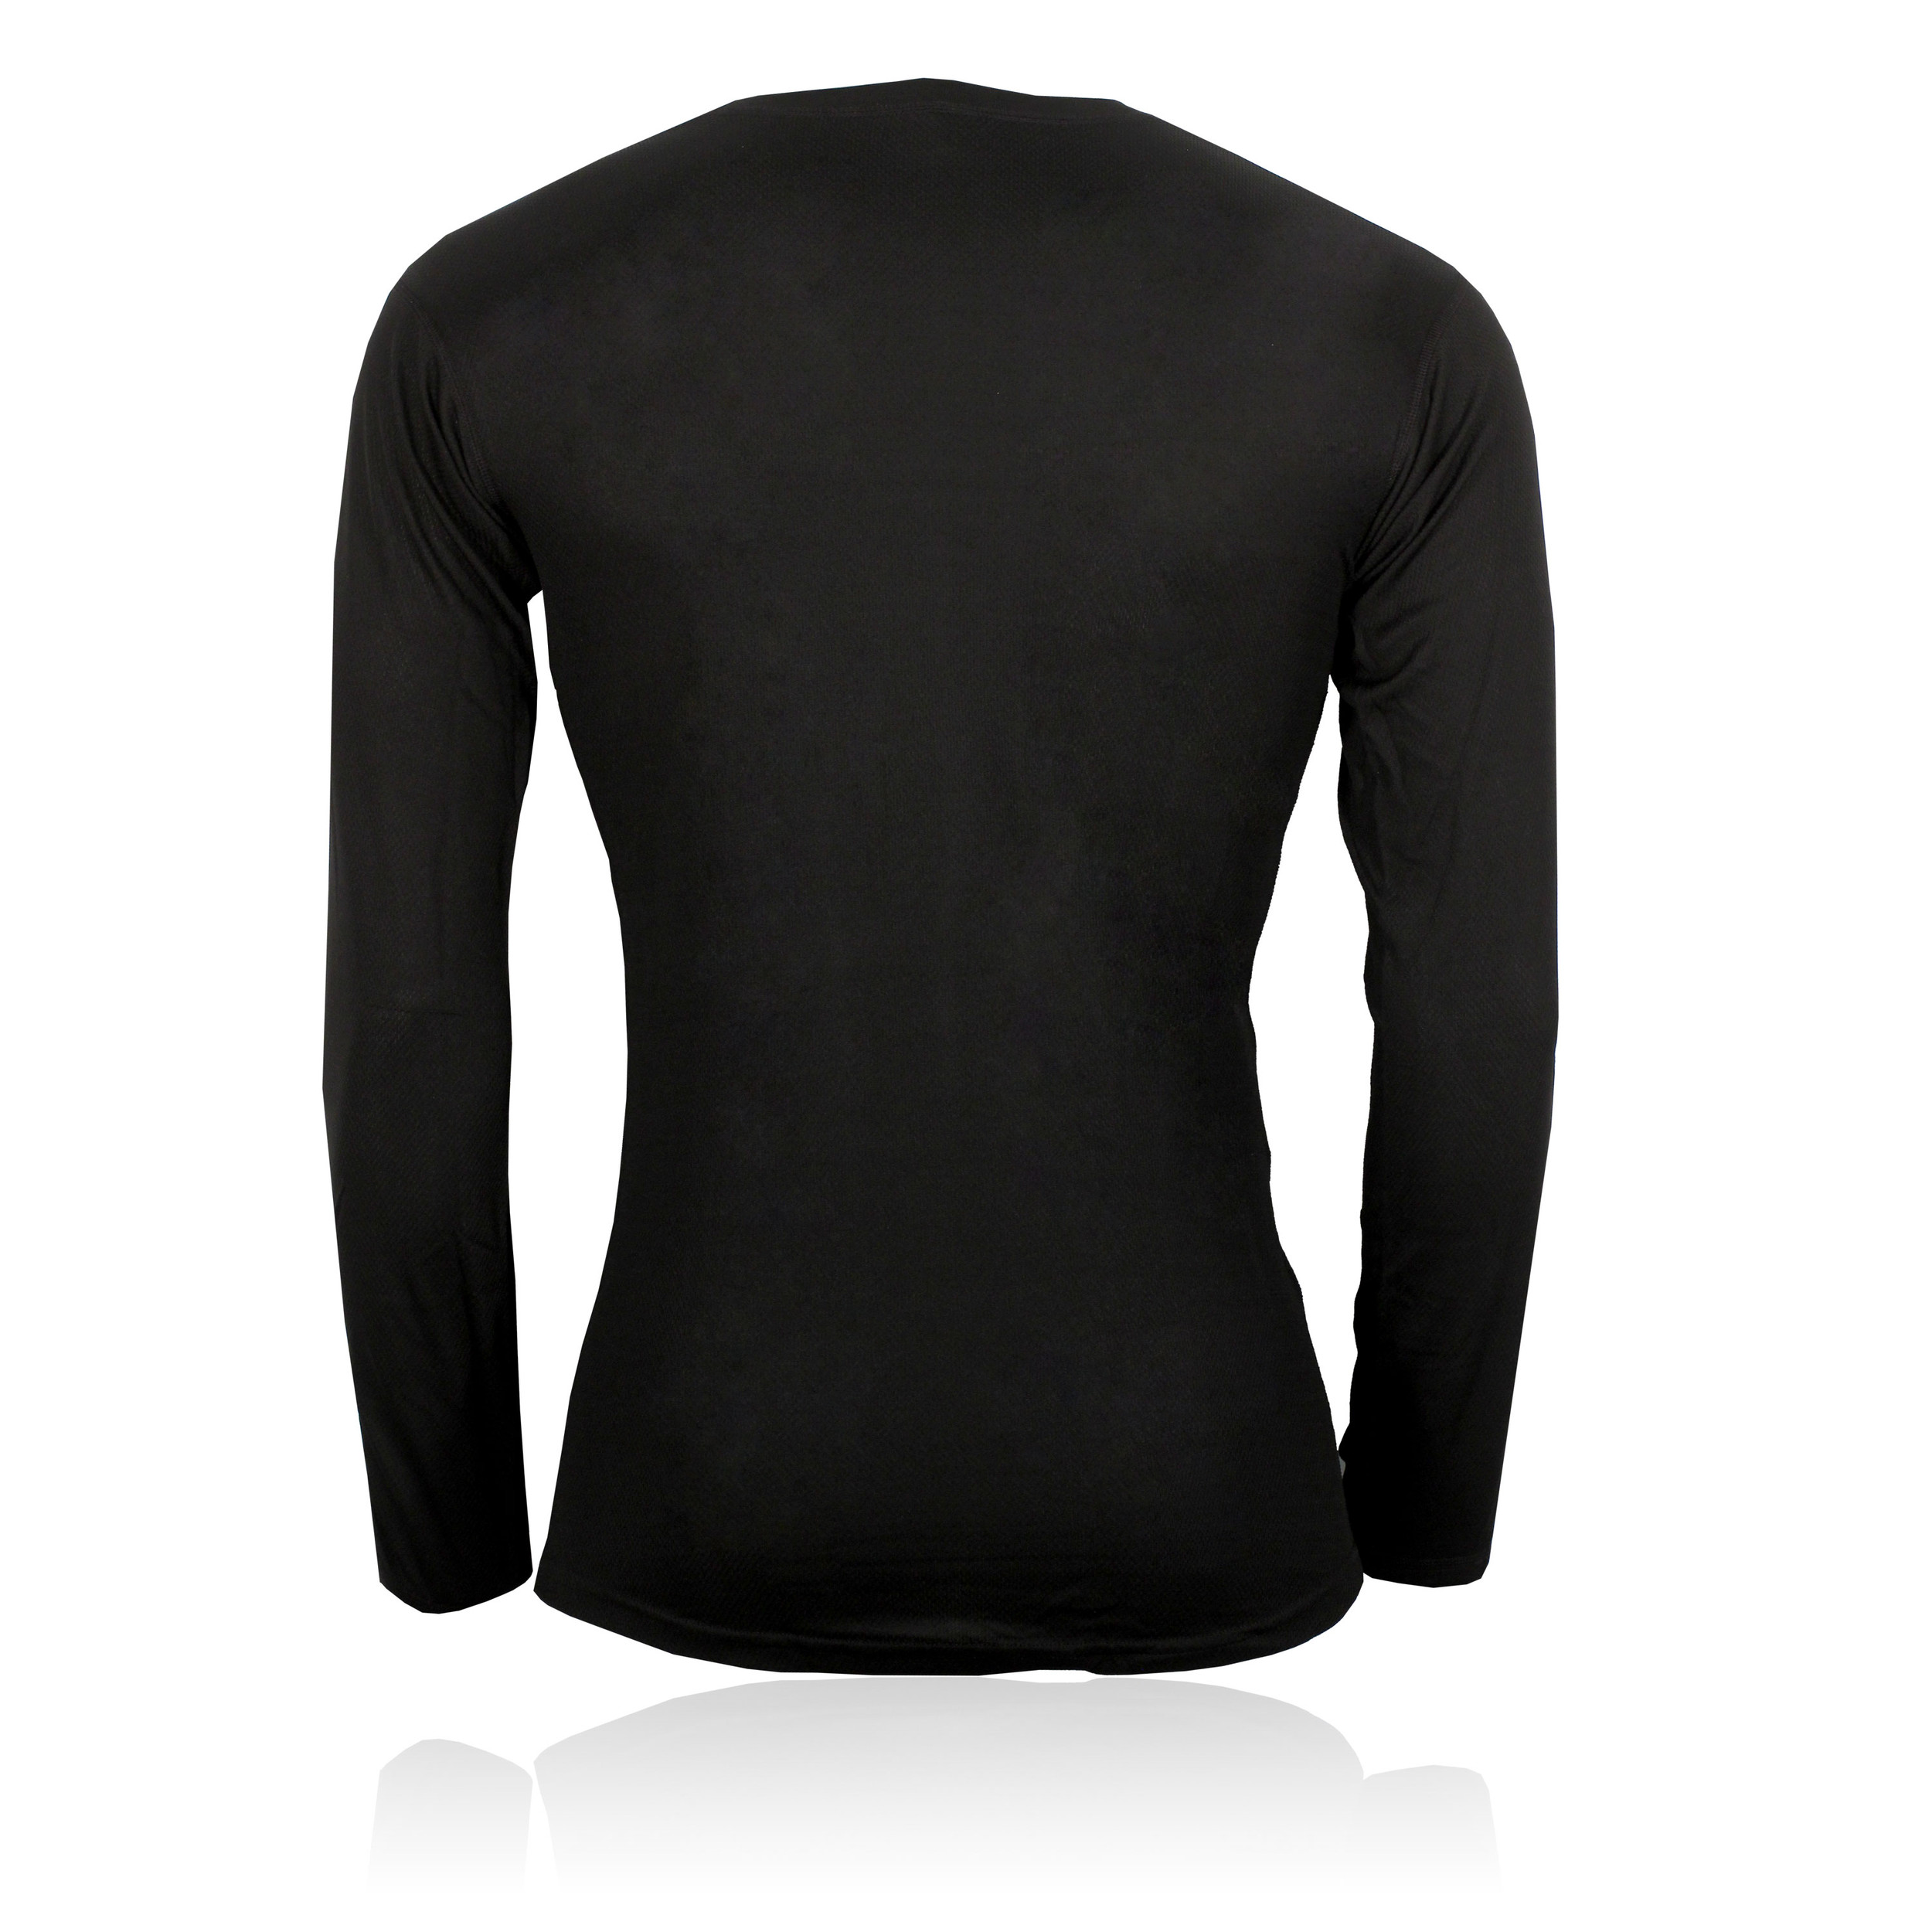 bfb866608c Details about Helly Hansen Mens Black Long Sleeve Athletic Running Crew  Neck Baselayer Top New